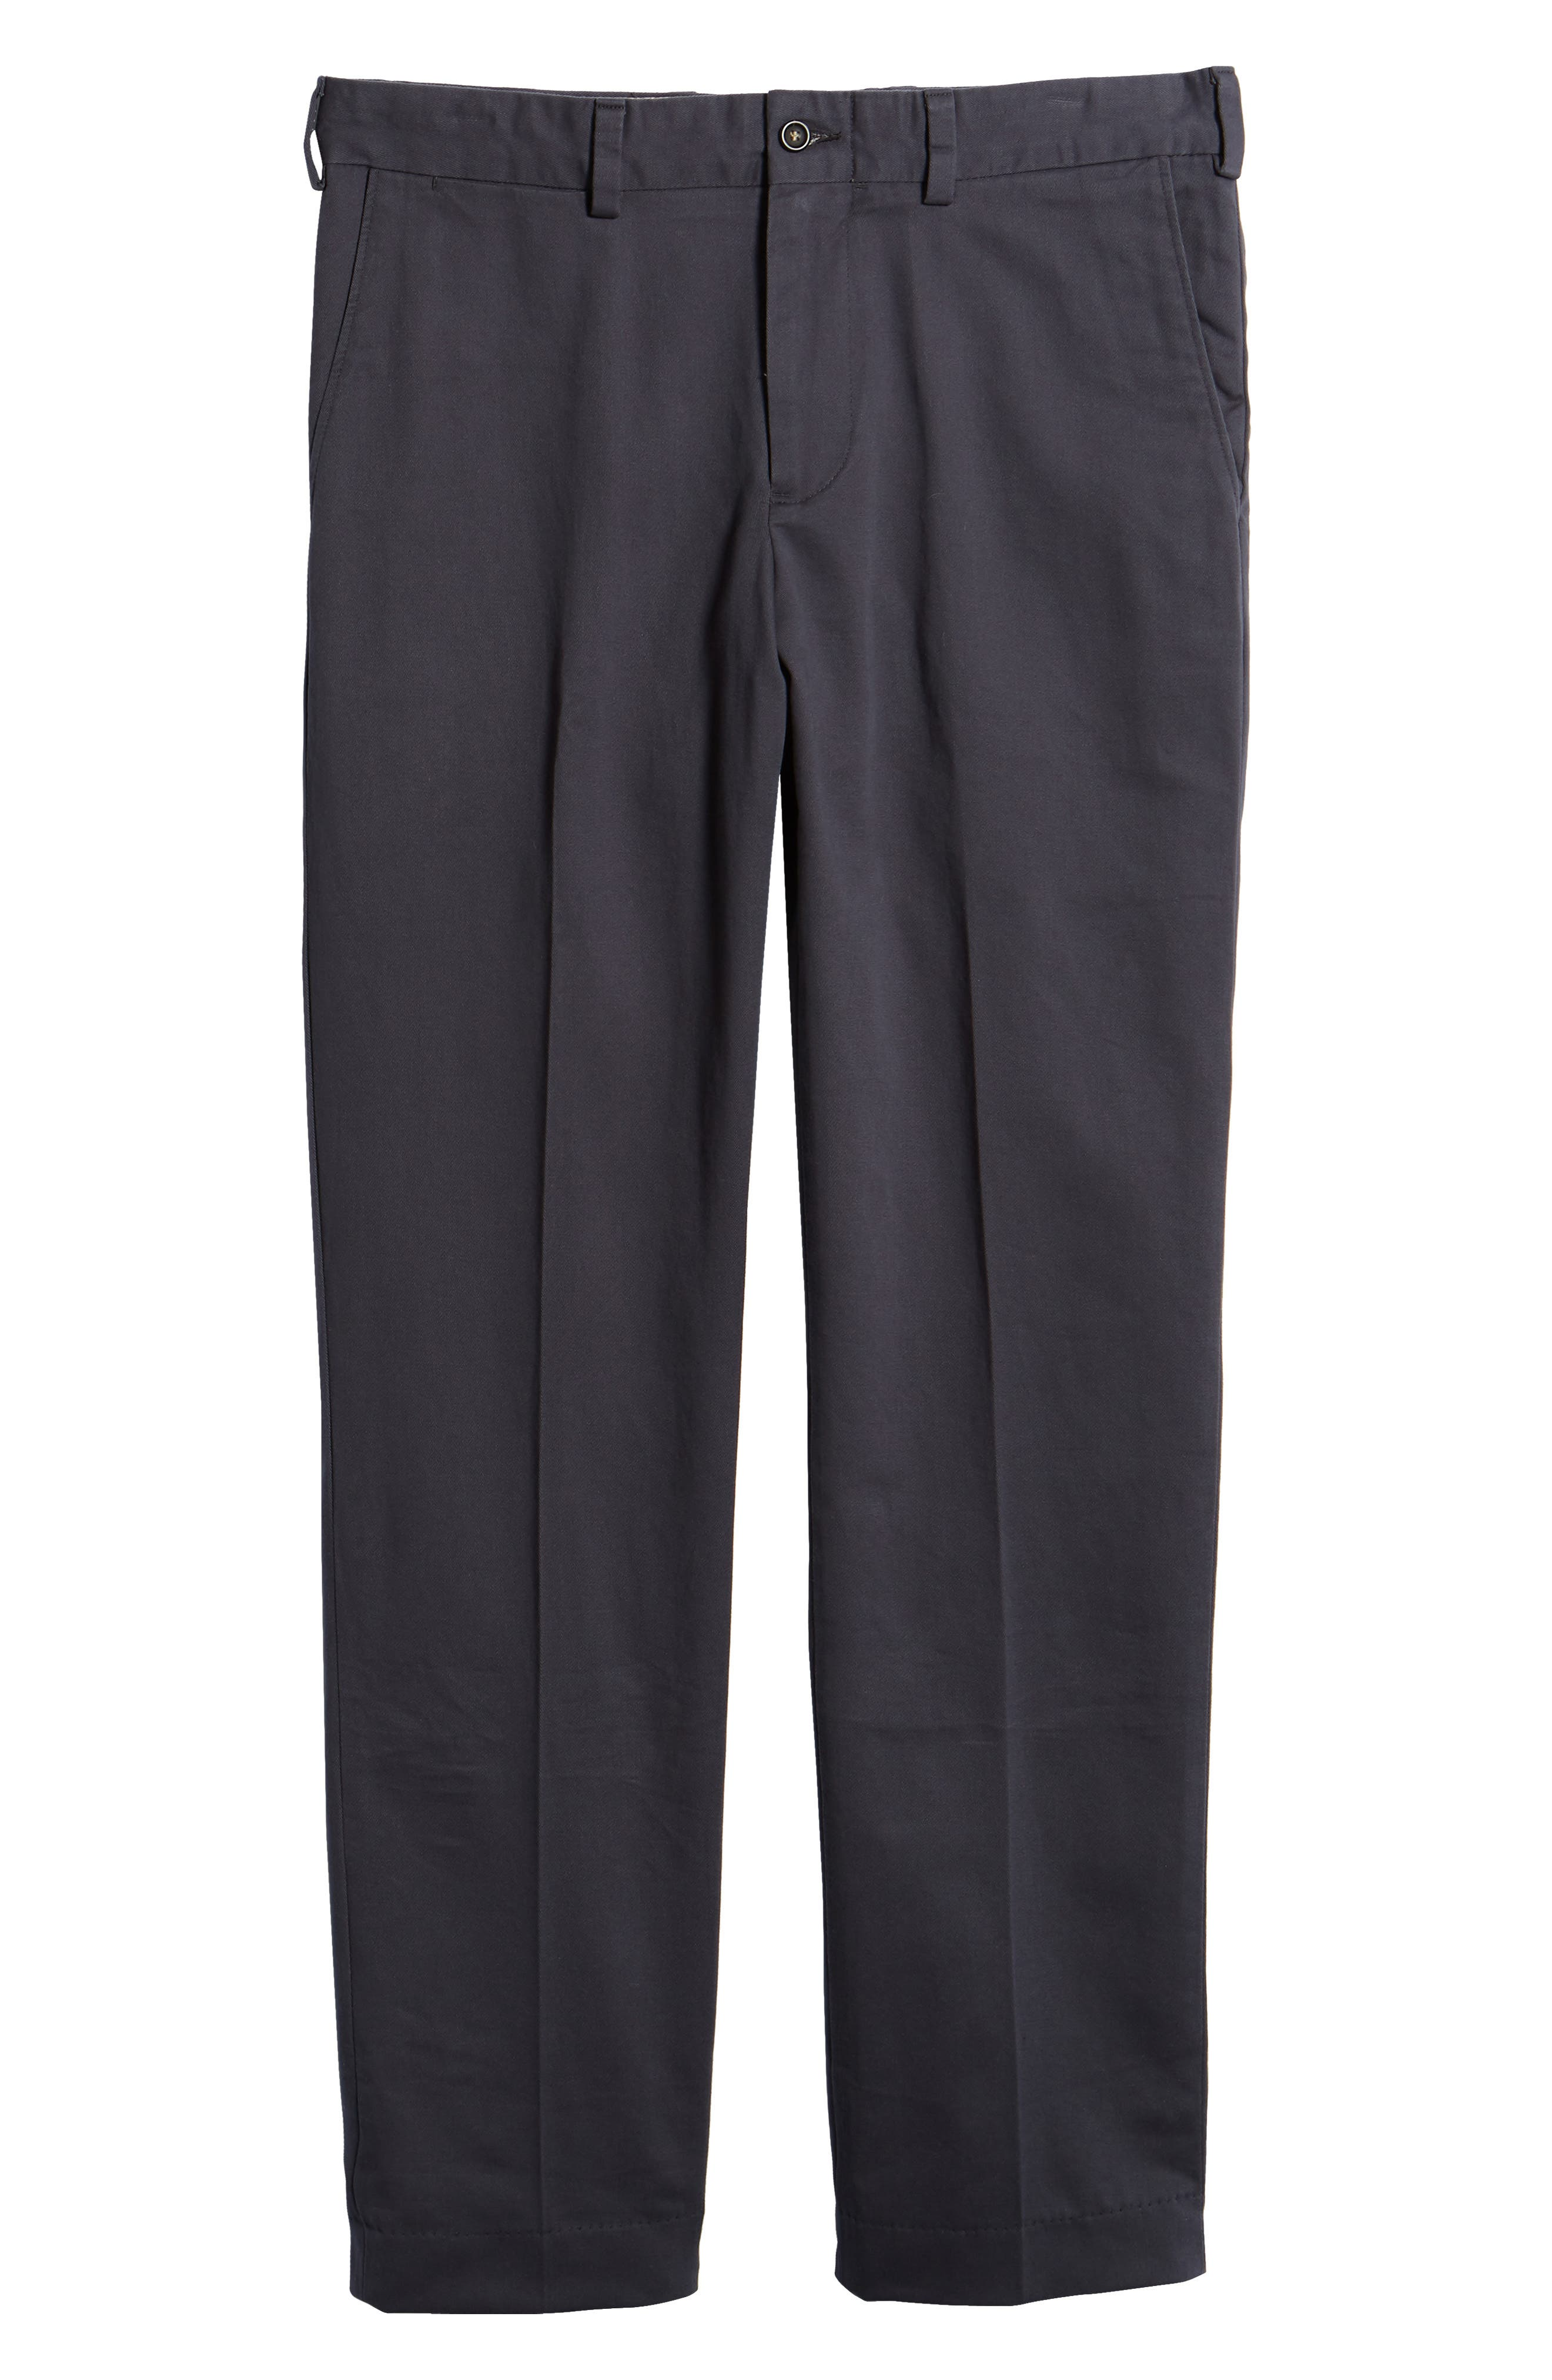 M3 Straight Fit Flat Front Vintage Twill Pants,                             Alternate thumbnail 6, color,